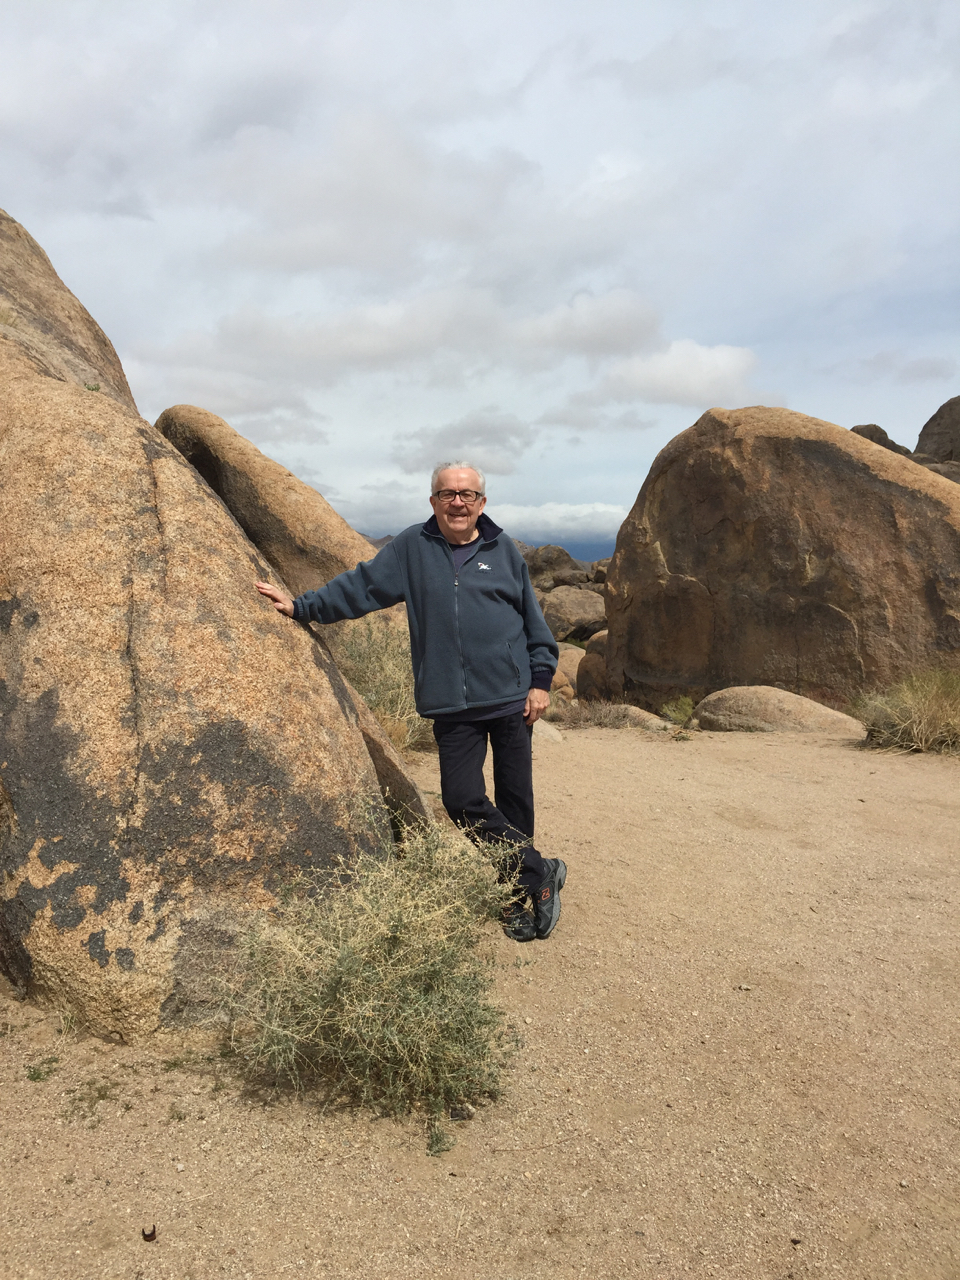 Bob out amonst the boulders and the desert scrub lands around Lone Pine, CA